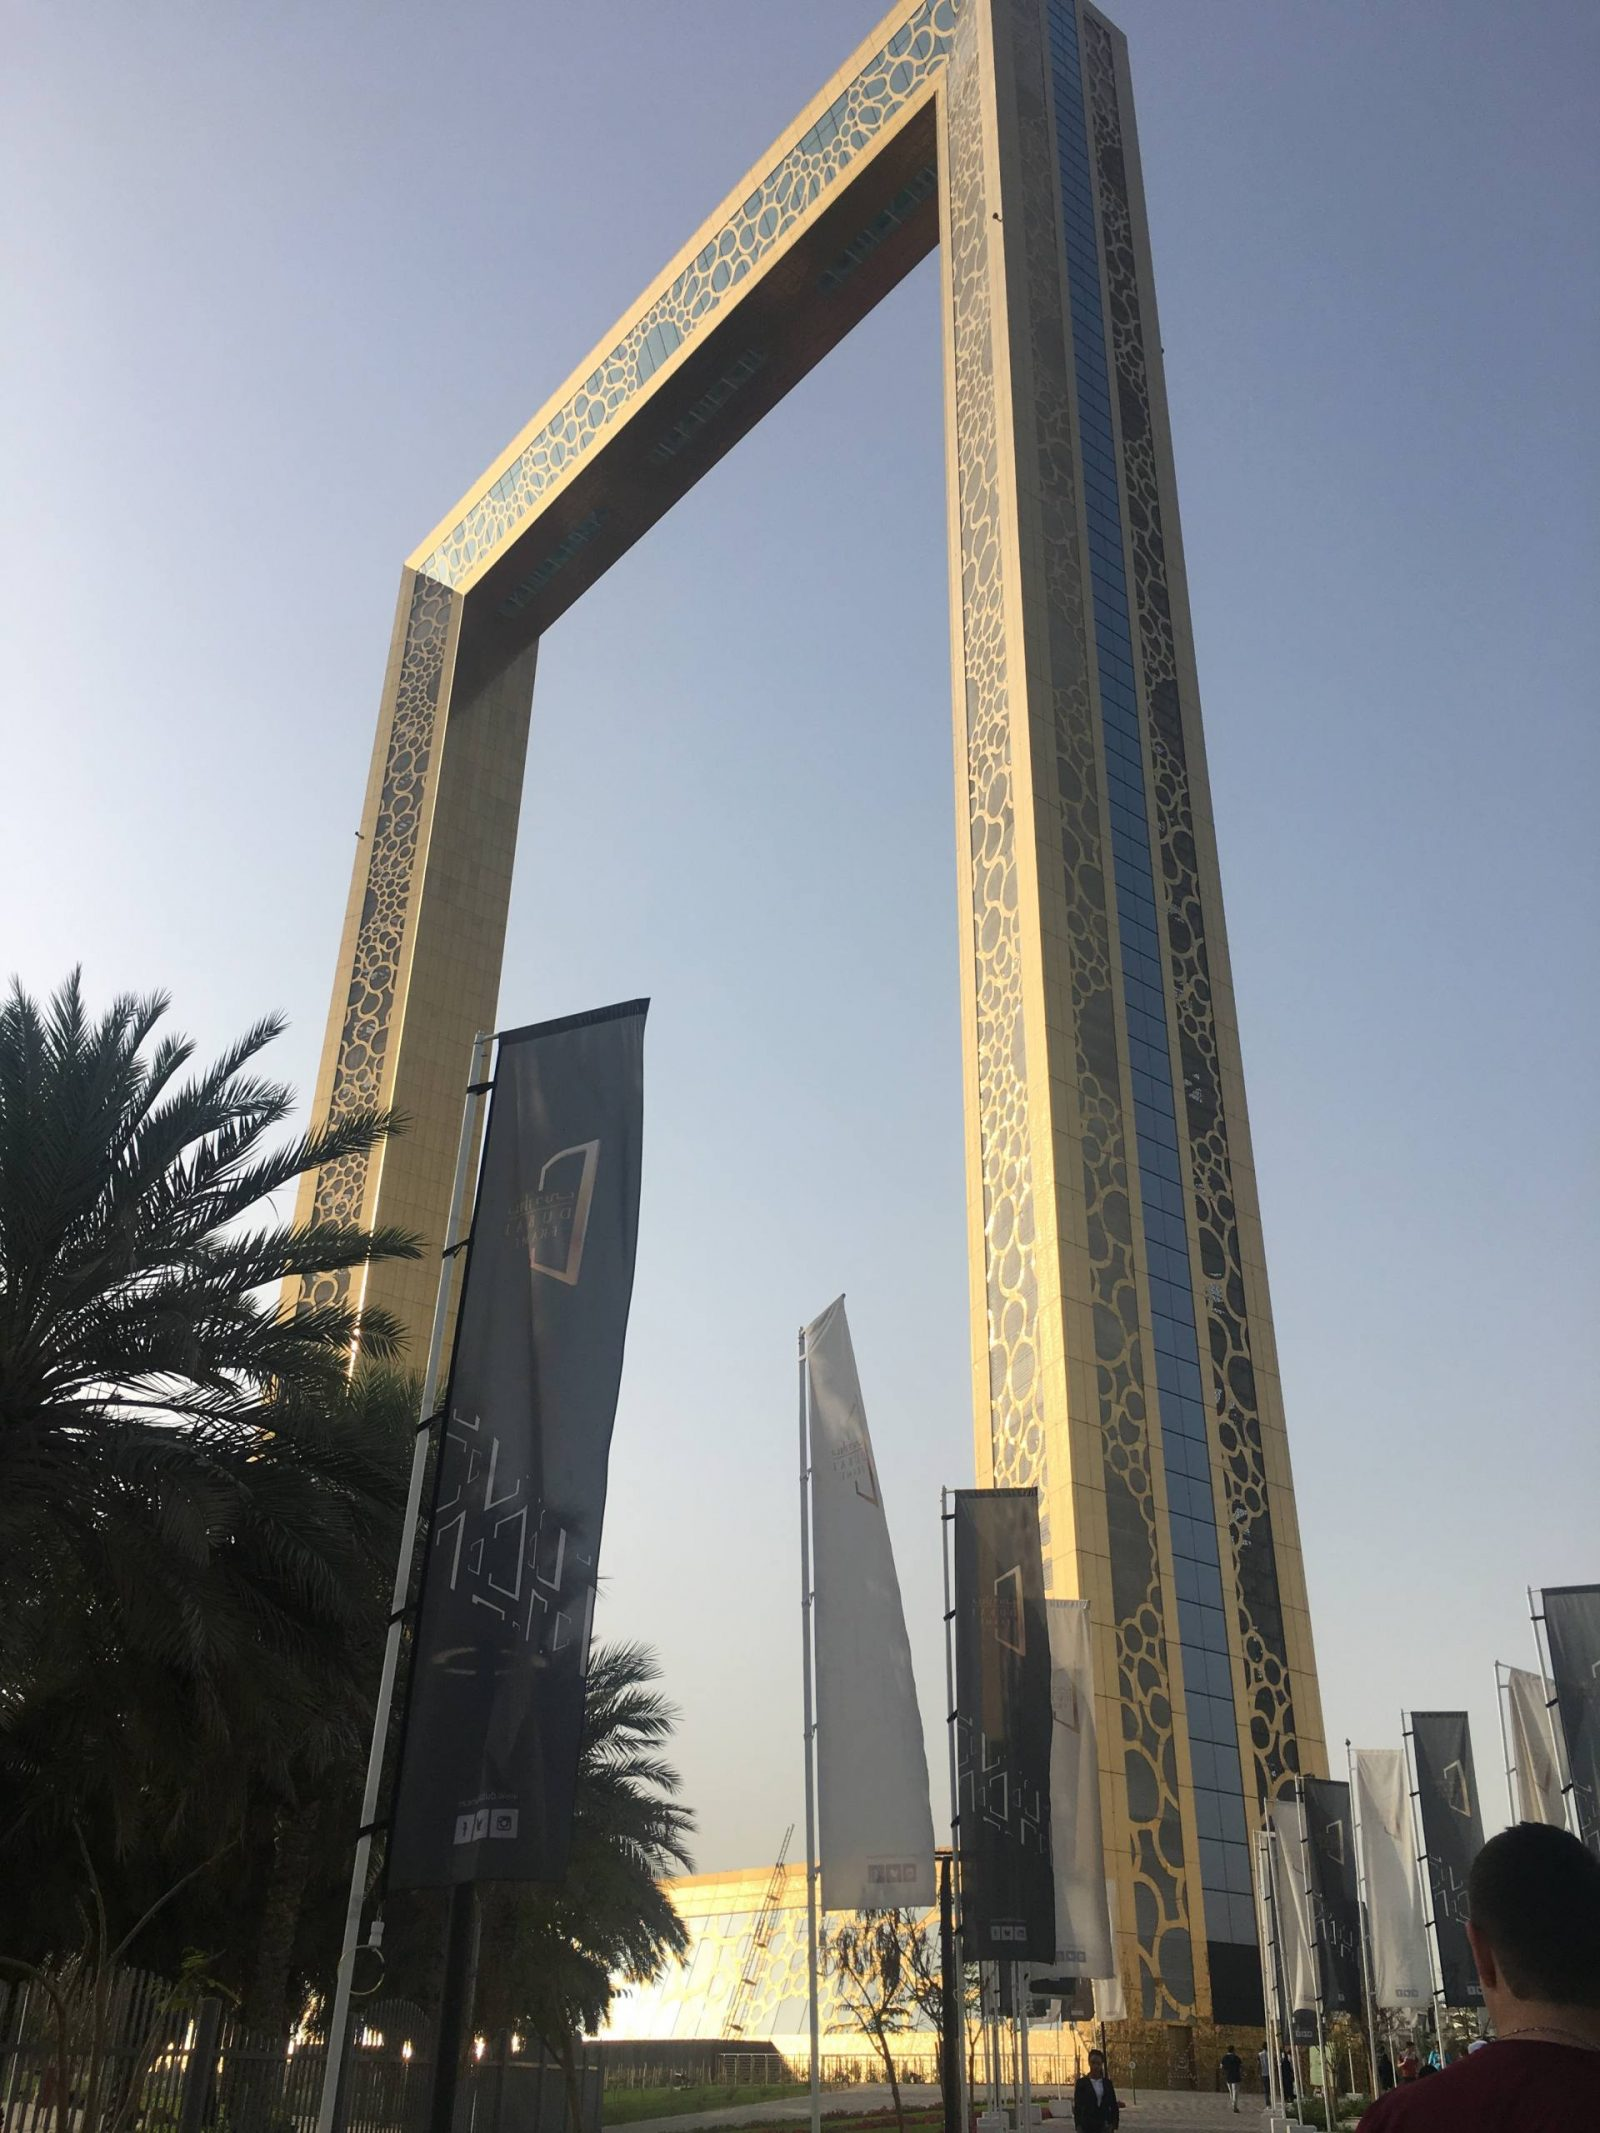 The Dubai Frame, a 150 metre tall golden photo frame in Zabeel Park, Dubai, seen by day